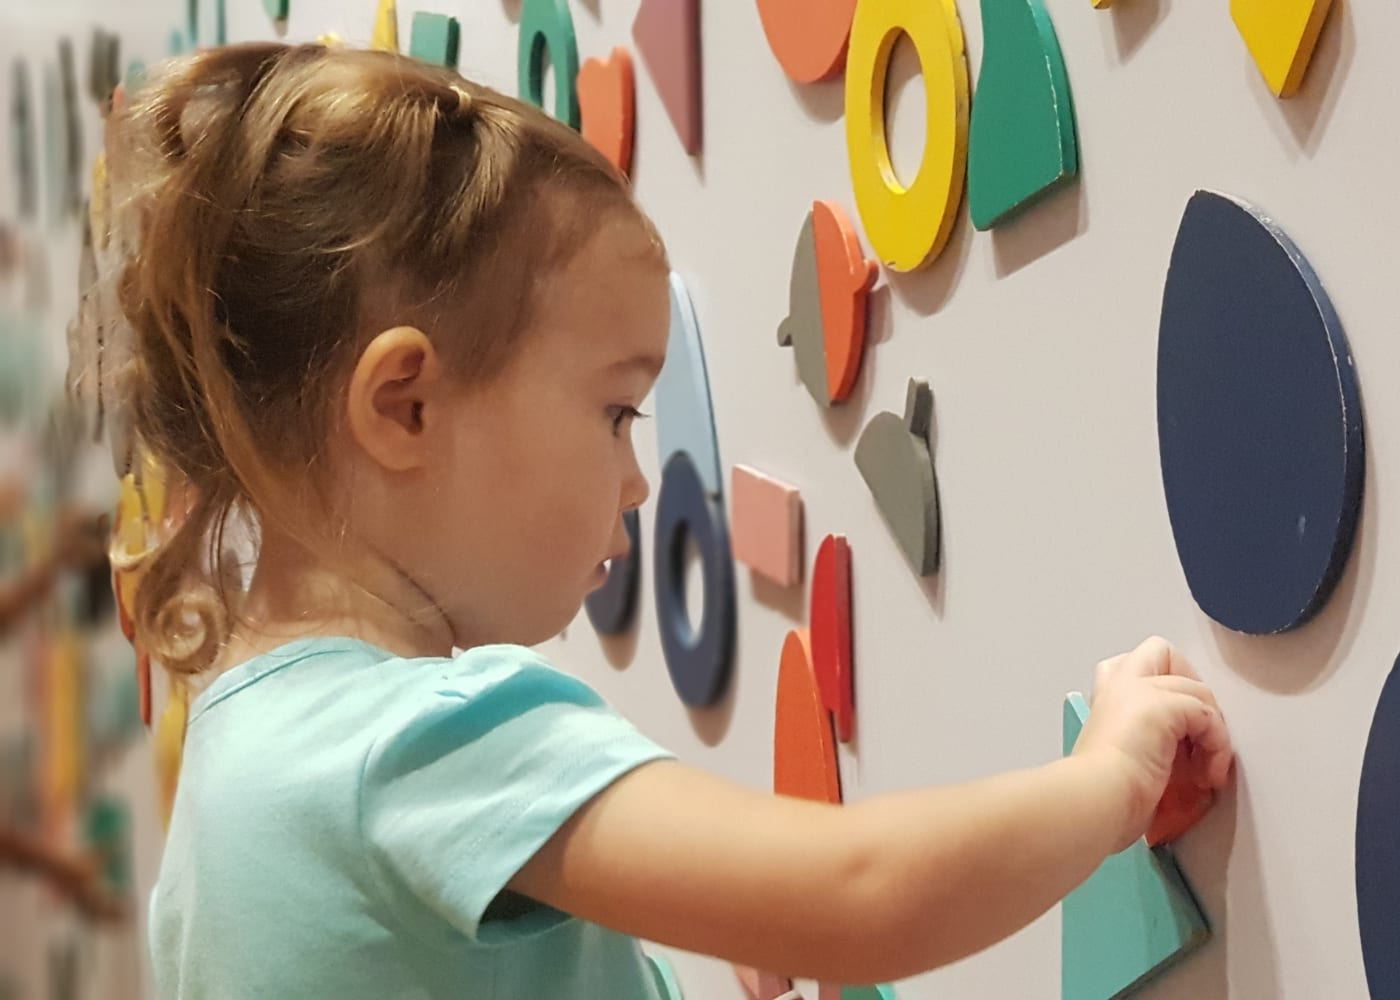 Best museums and exhibitions for kids in Singapore 2019